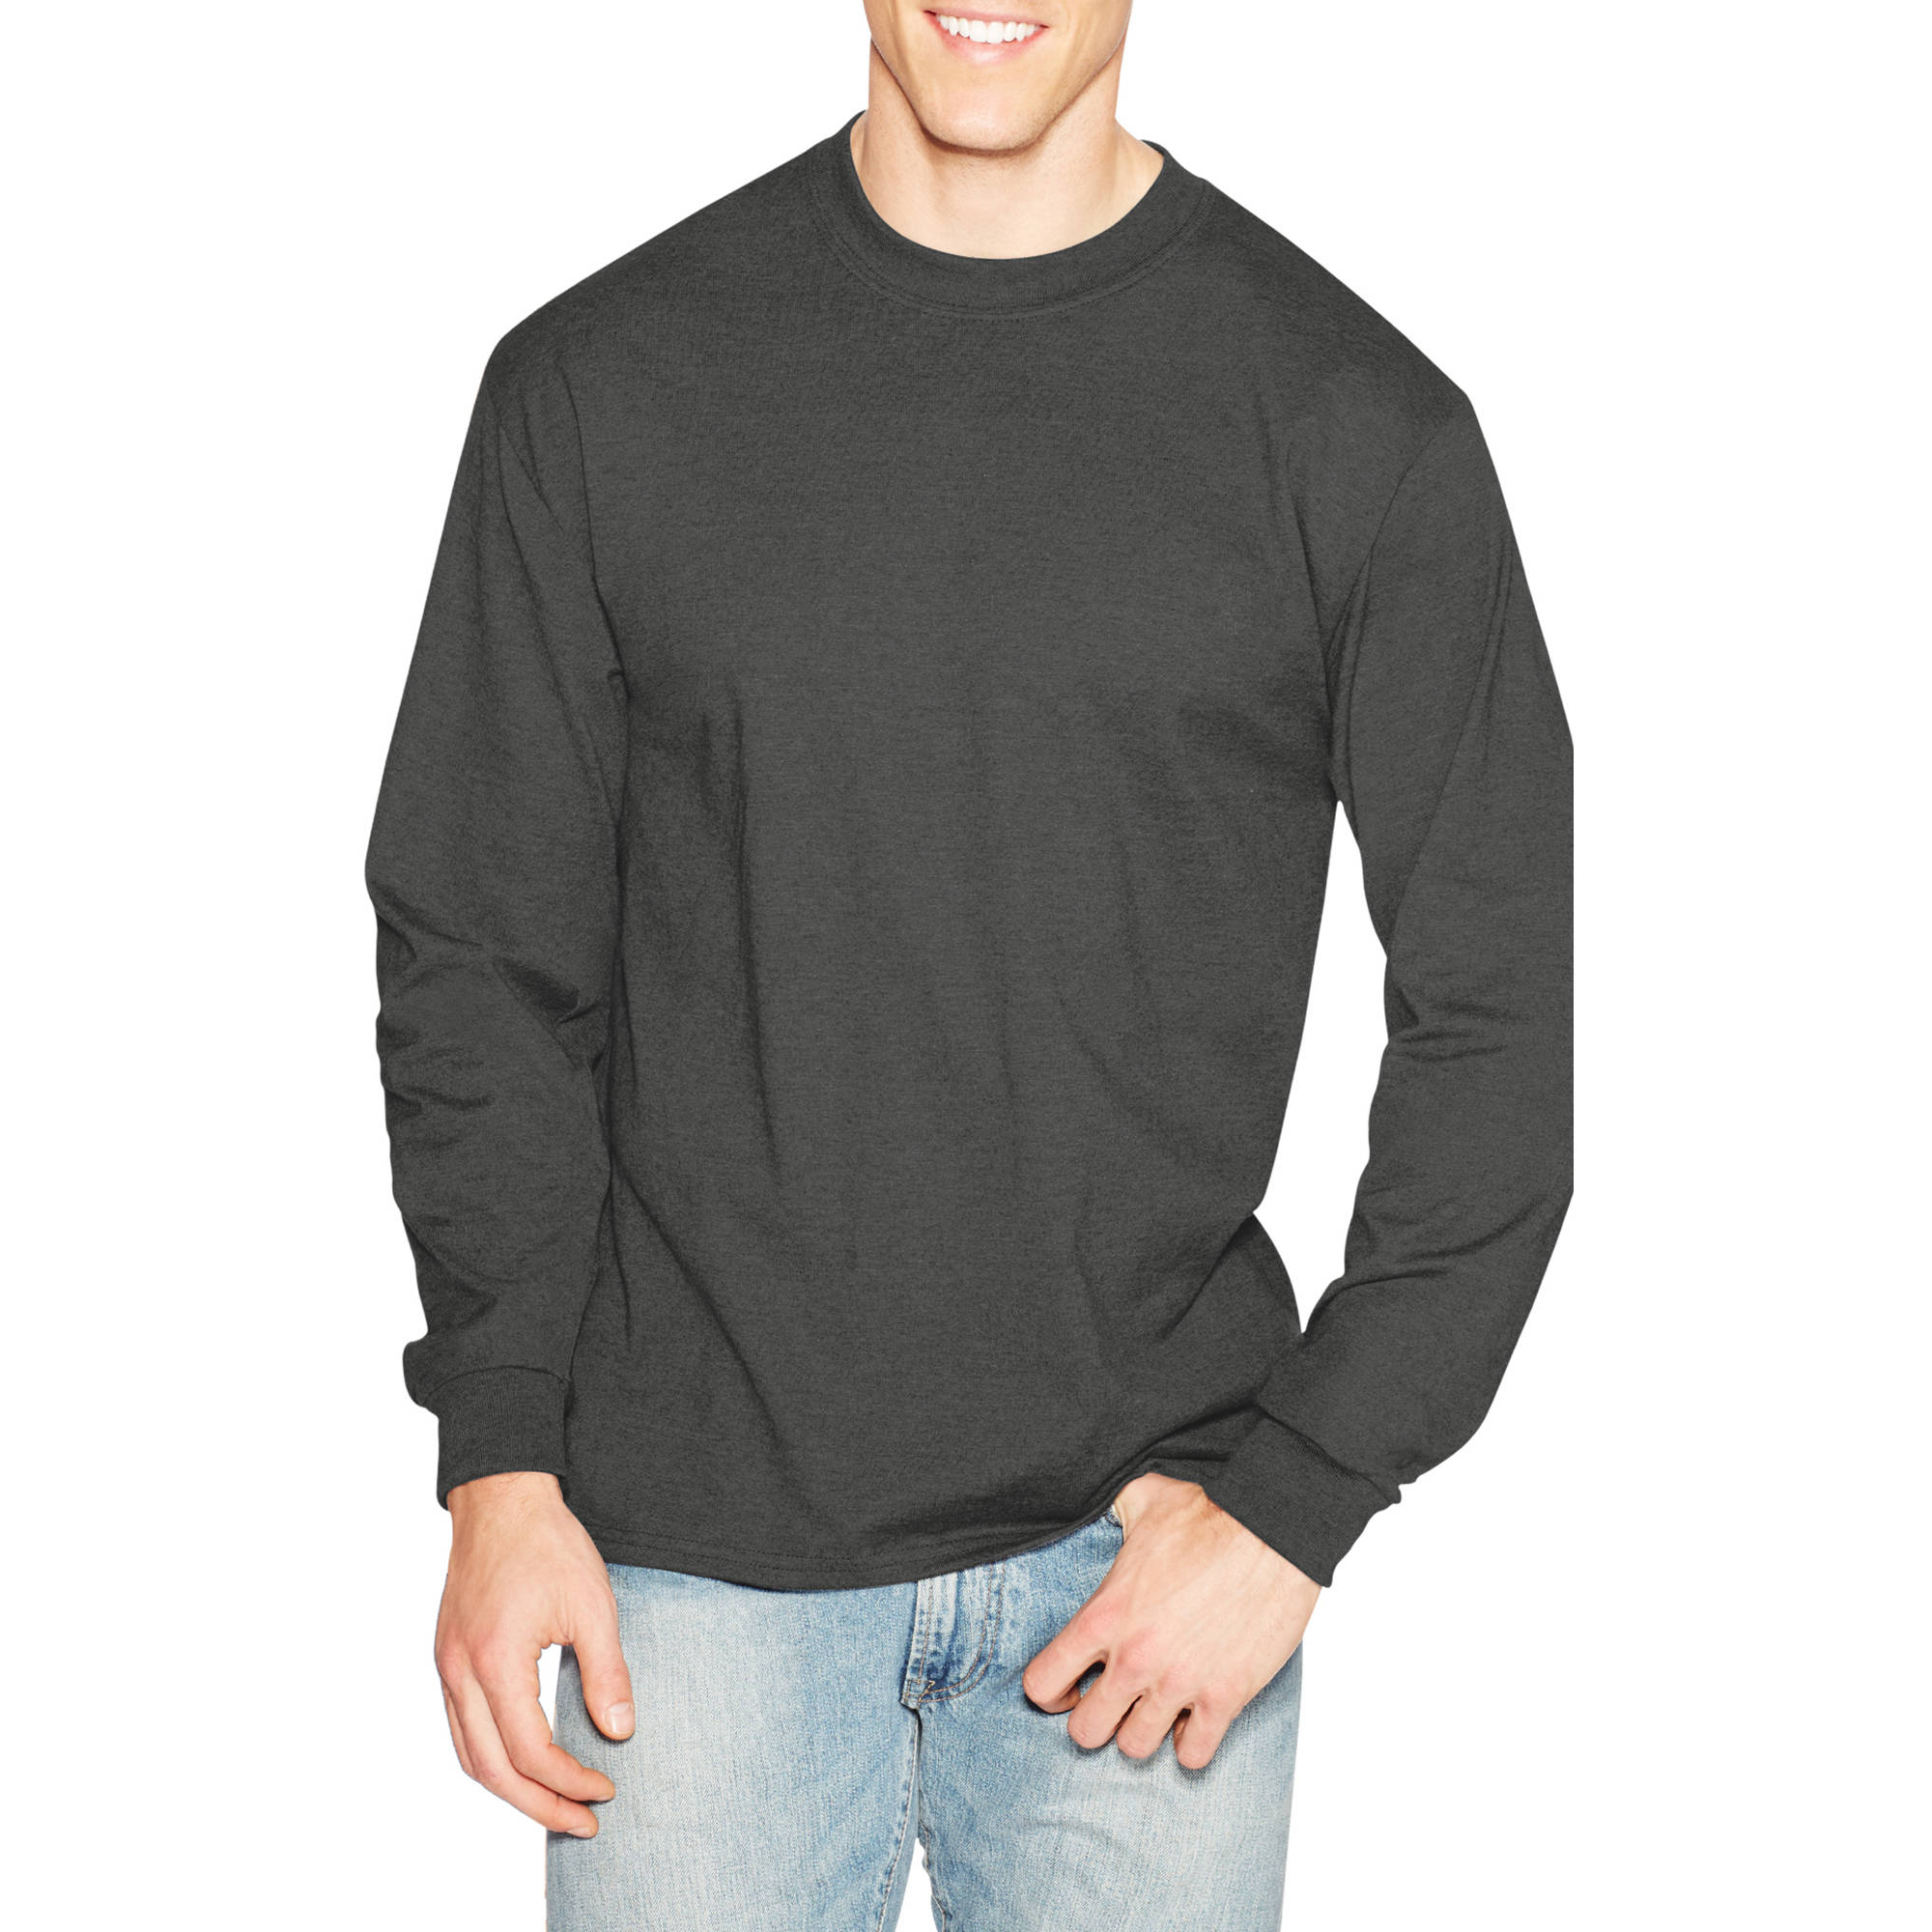 Hanes men s long sleeve t shirts artee shirt for What is a long sleeve t shirt